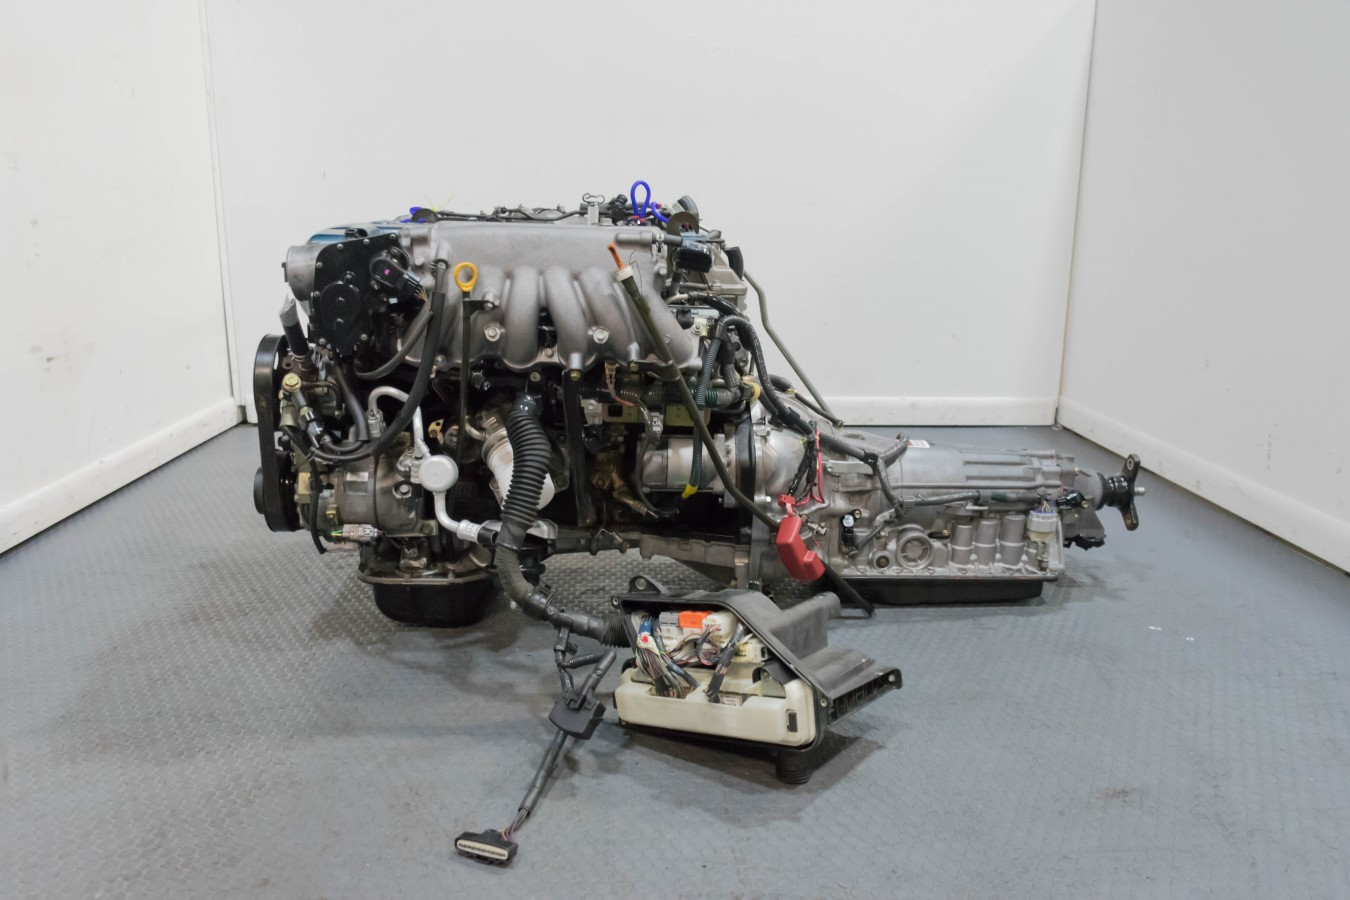 Clean Jdm Toyota Aristo Twin Turbo 2jz Gte Vvti Complete Engine With Harness Ecu Wiring Auto 1187 Dsc 0209